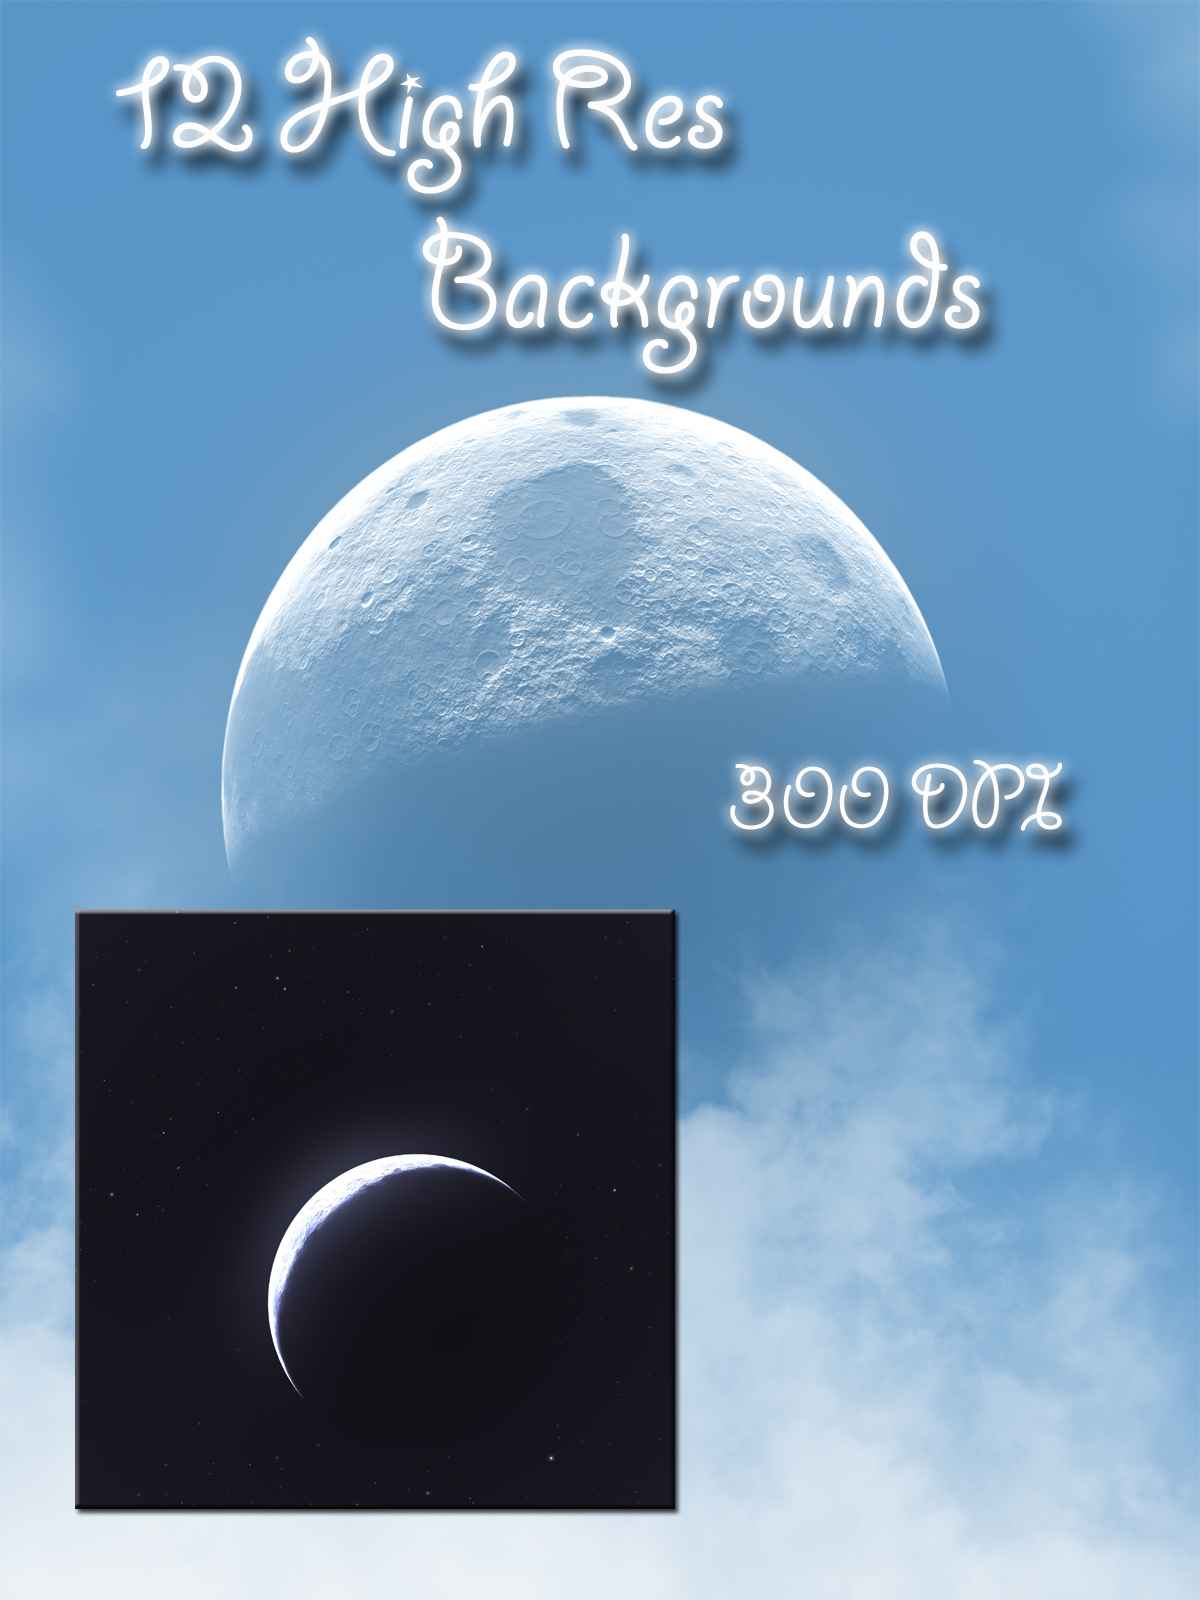 Drama Skies Backgrounds - Moons